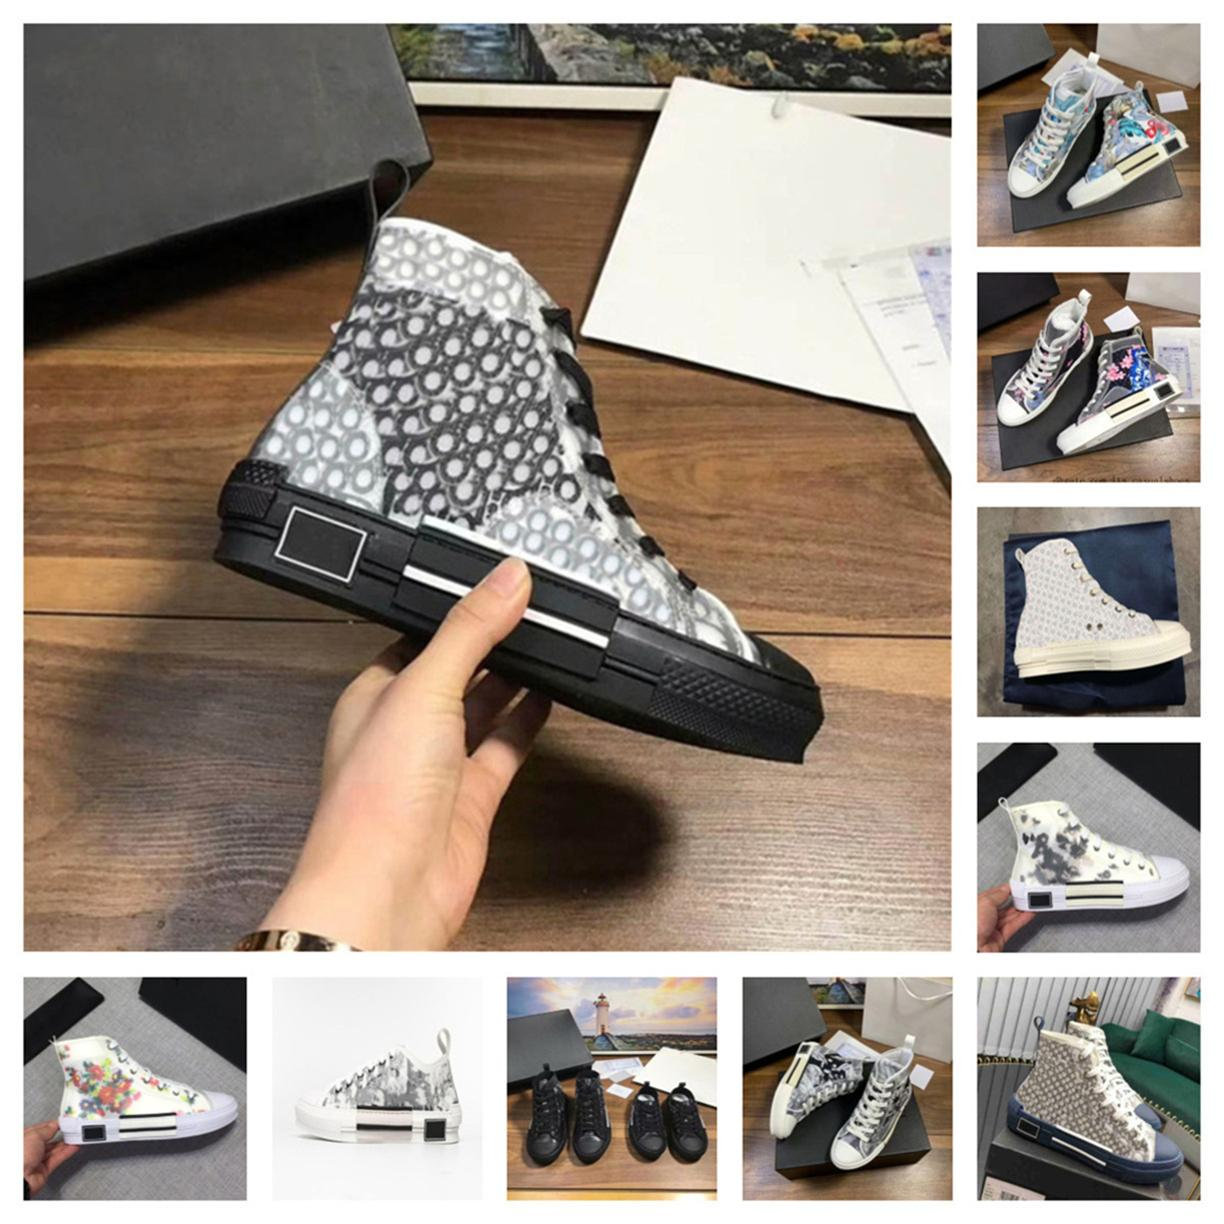 2020 new limited edition custom printed canvas shoes, fashion versatile high and low shoes, with original packaging shoe box delivery 50k